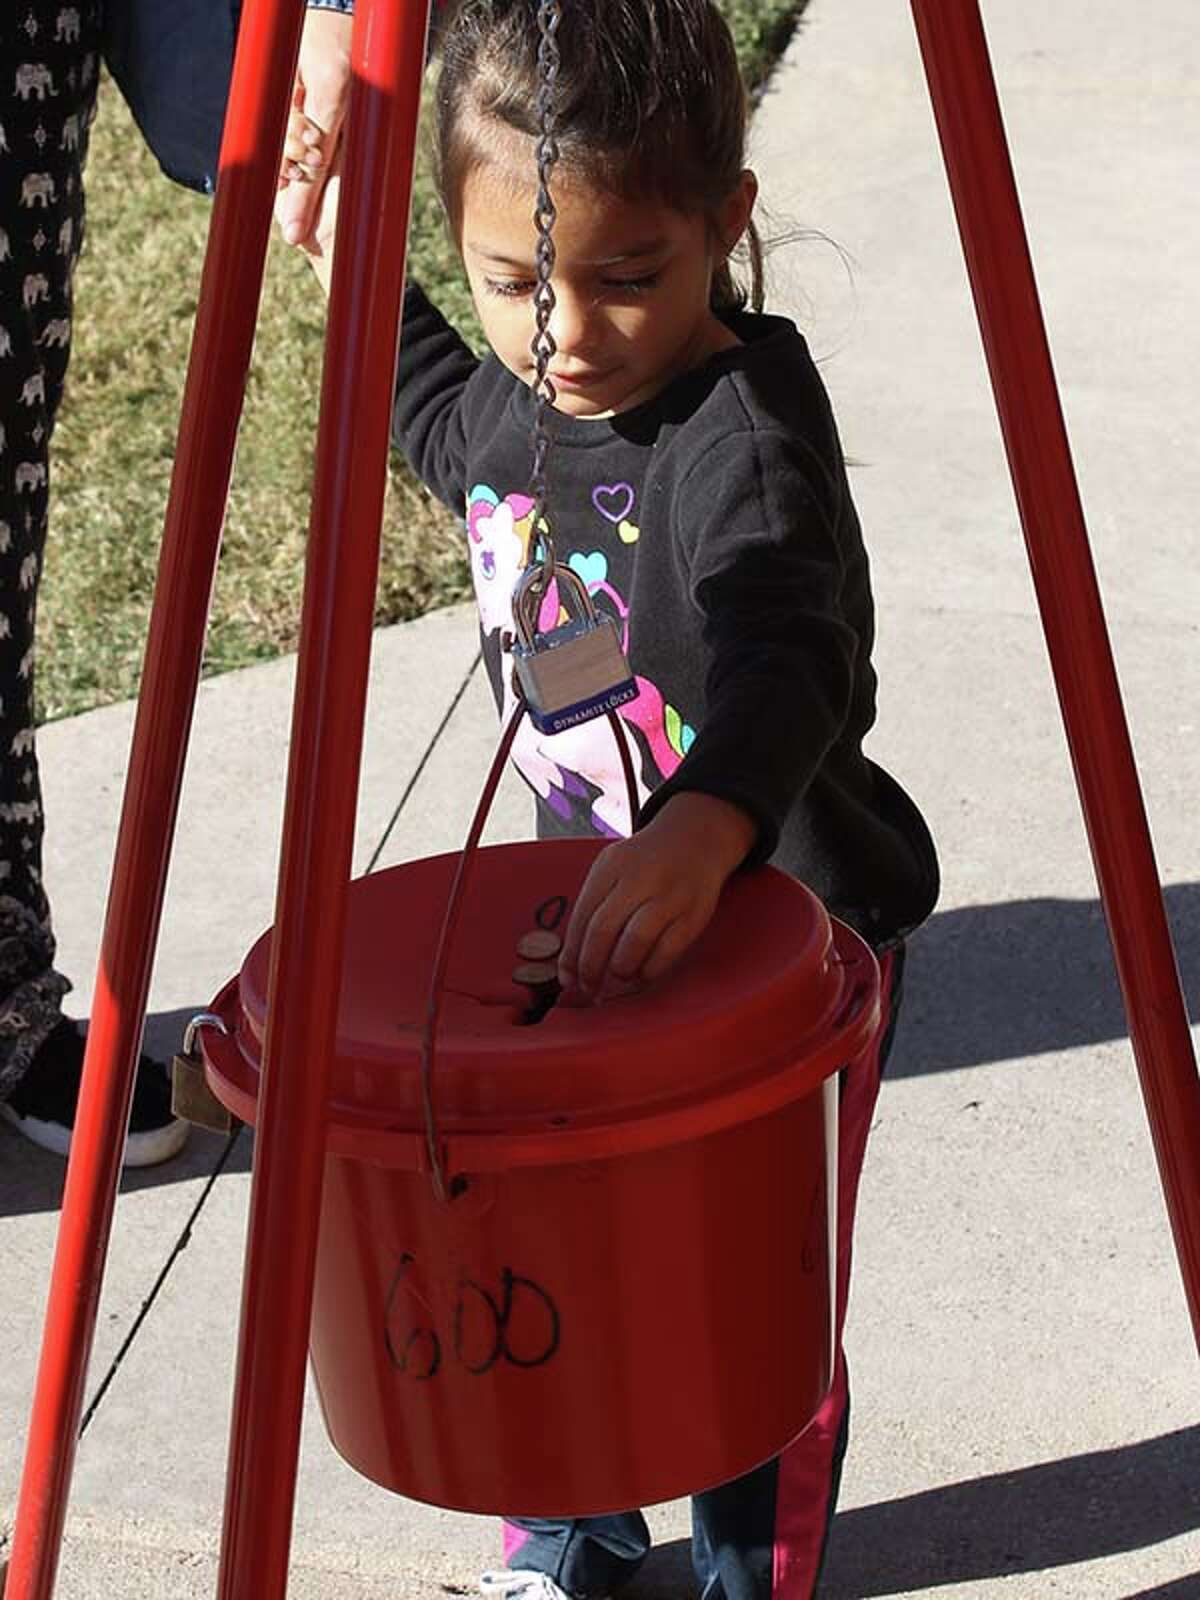 Jubilee Longoria donates to the Salvation Army red kettle.